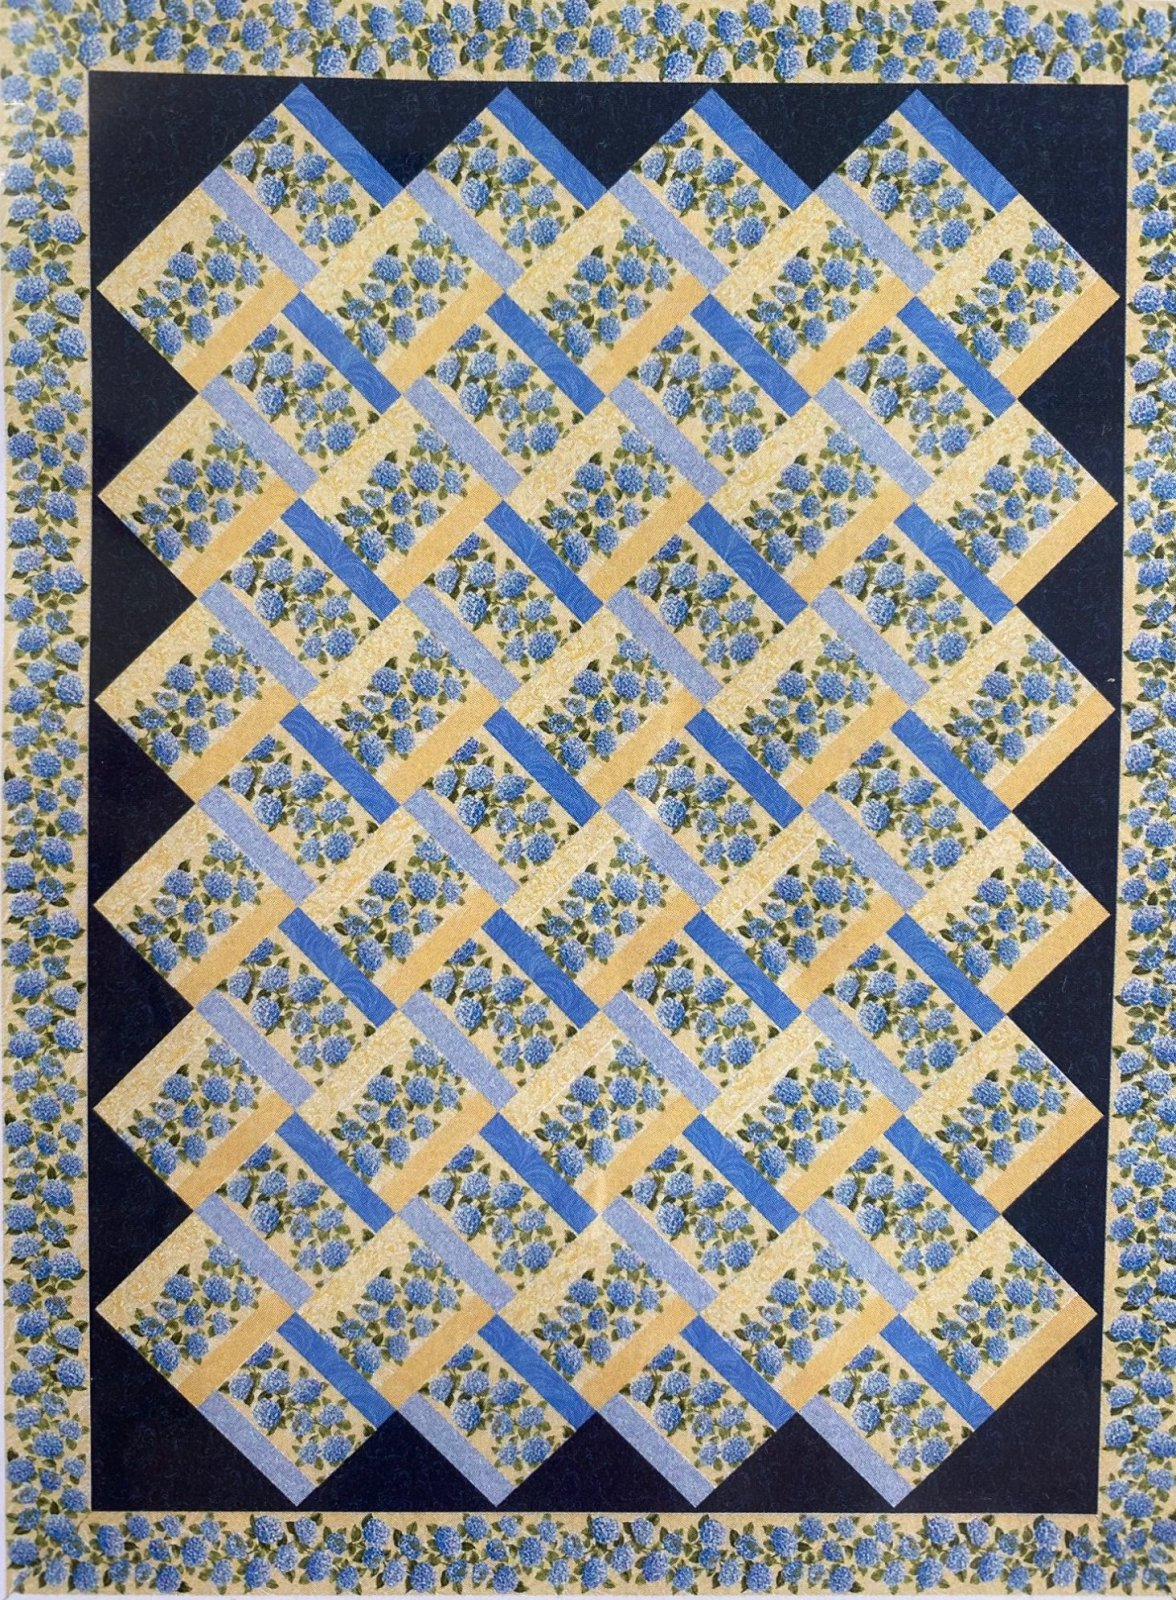 Woven Garden Kit Blue and Yellow Floral (Twin)